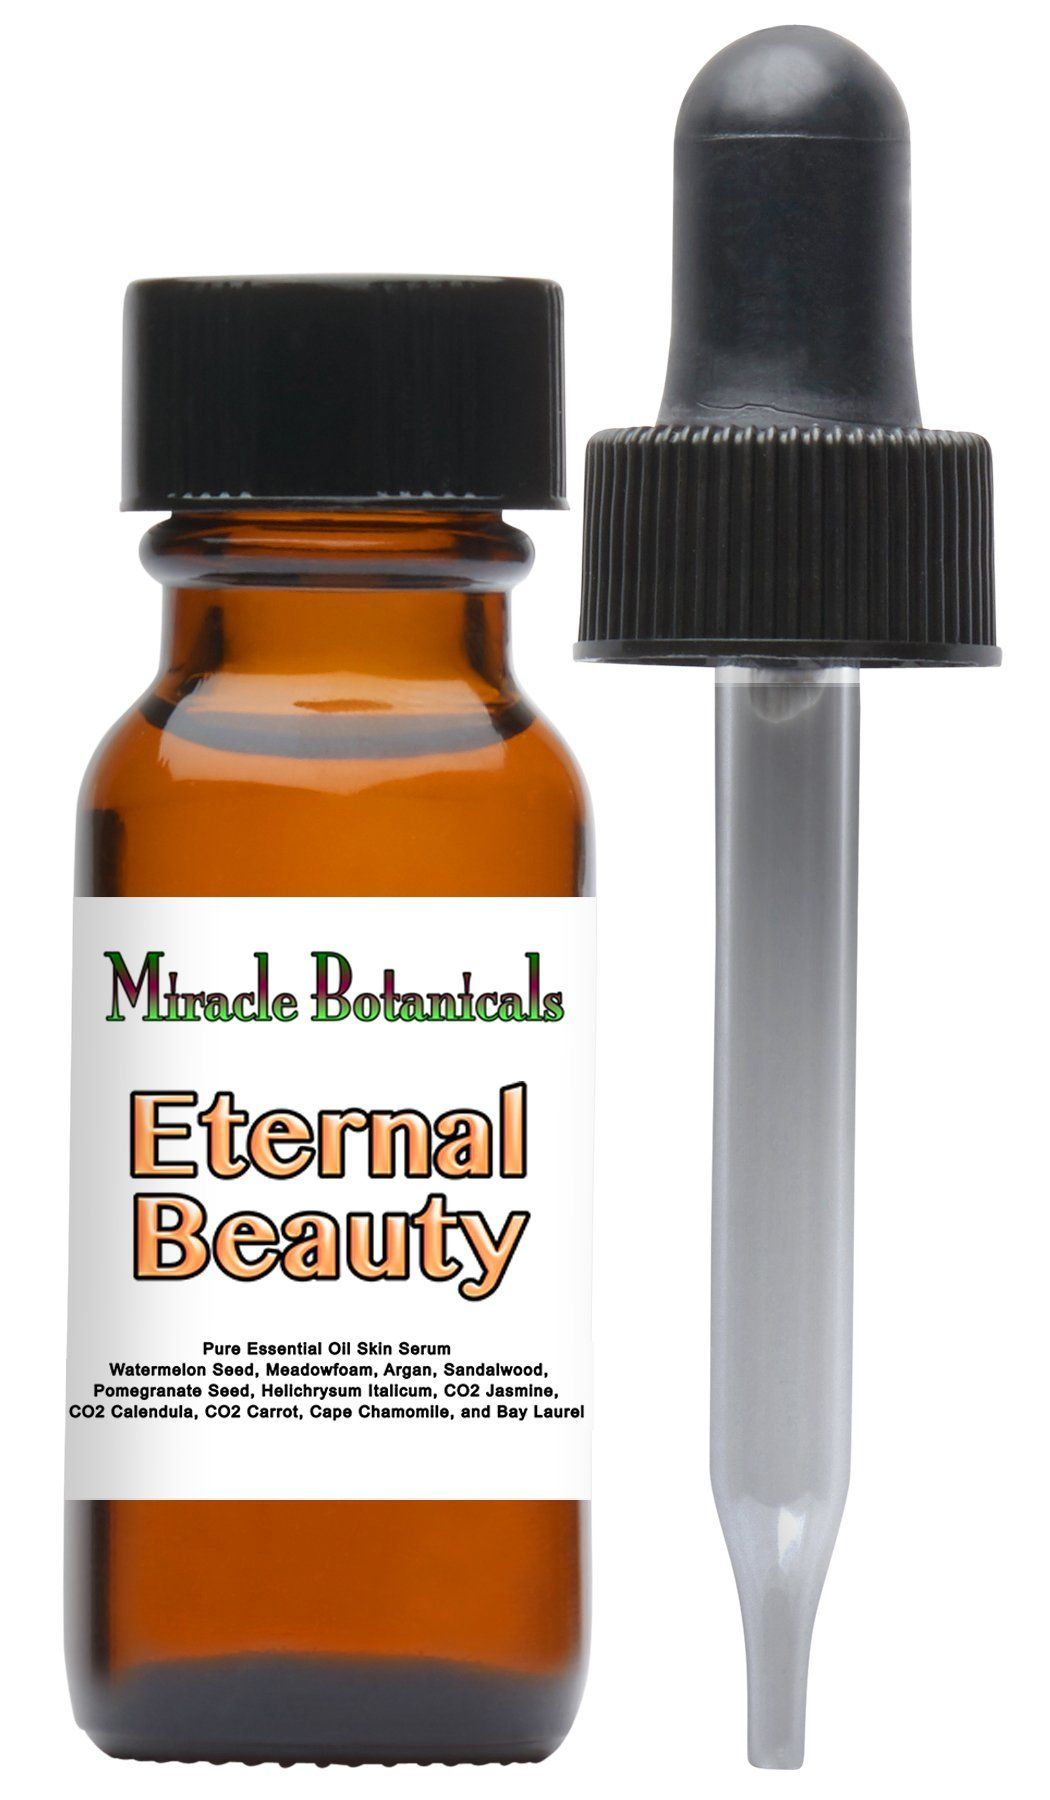 Acne Treatment Miracle Botanicals Eternal Beauty Skin Serum Dr Pure Pimple Cream Care Made With The Finest